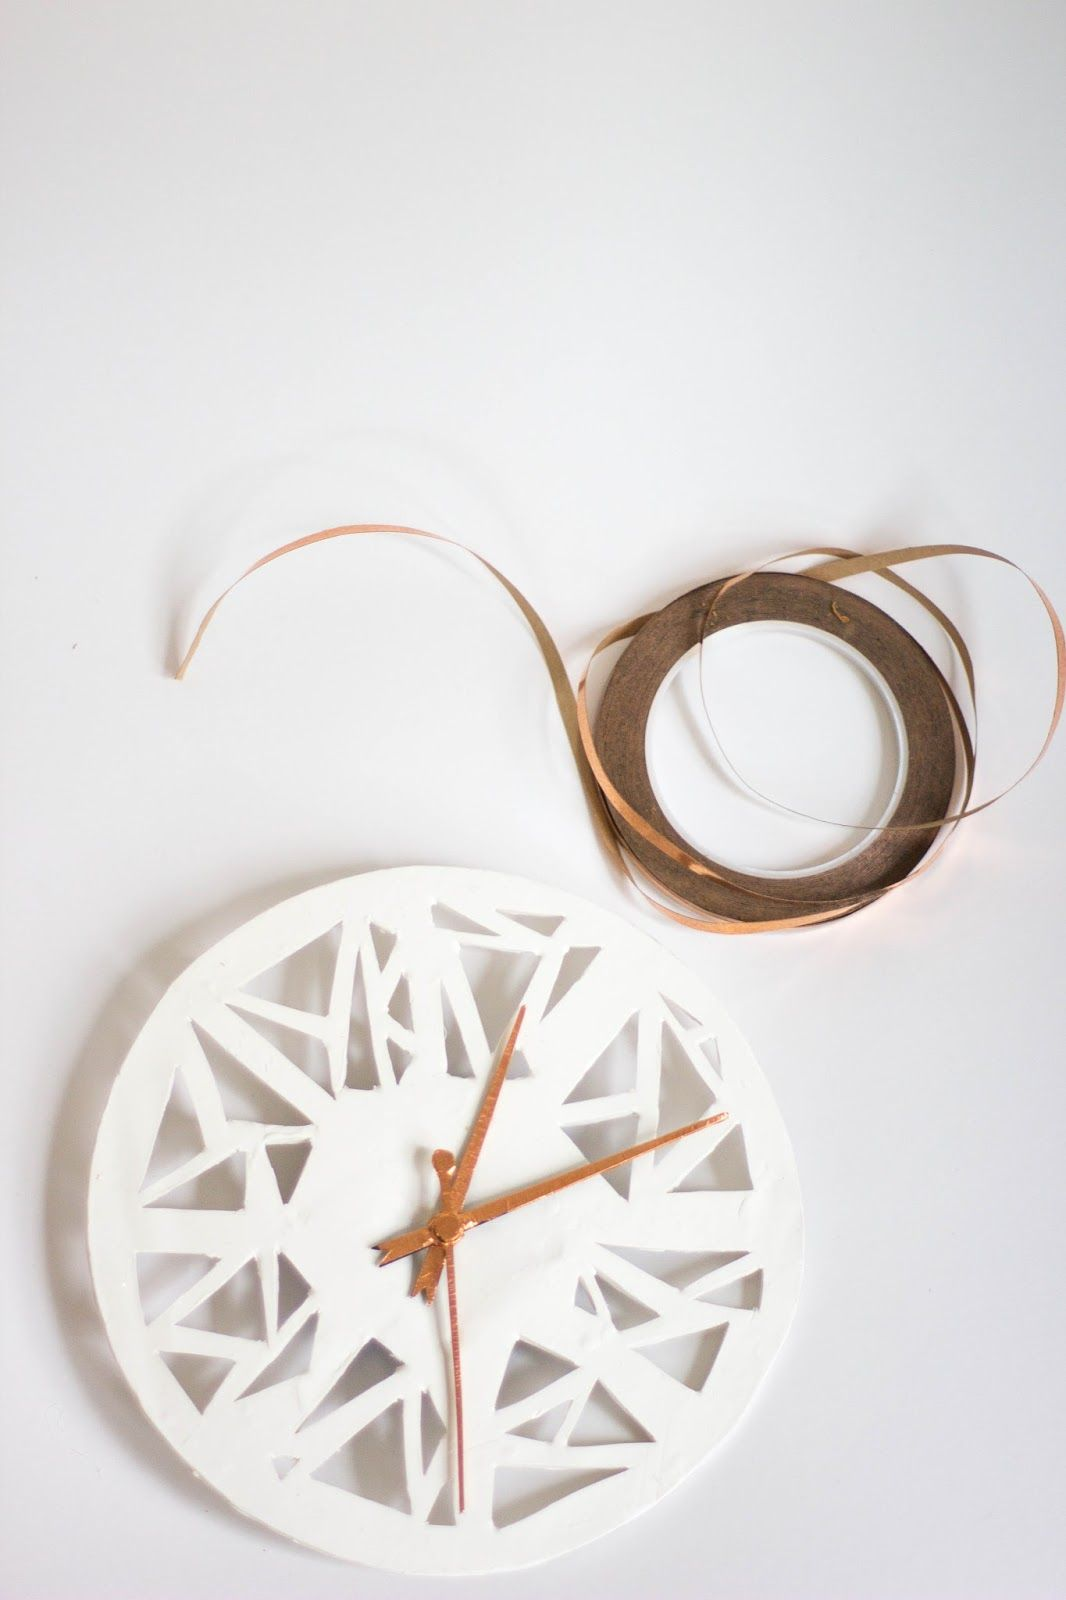 Copper geometric shape clock clocks shapes and repurposing always rooney is dedicated to offering new do it yourself projects tips on solutioingenieria Gallery